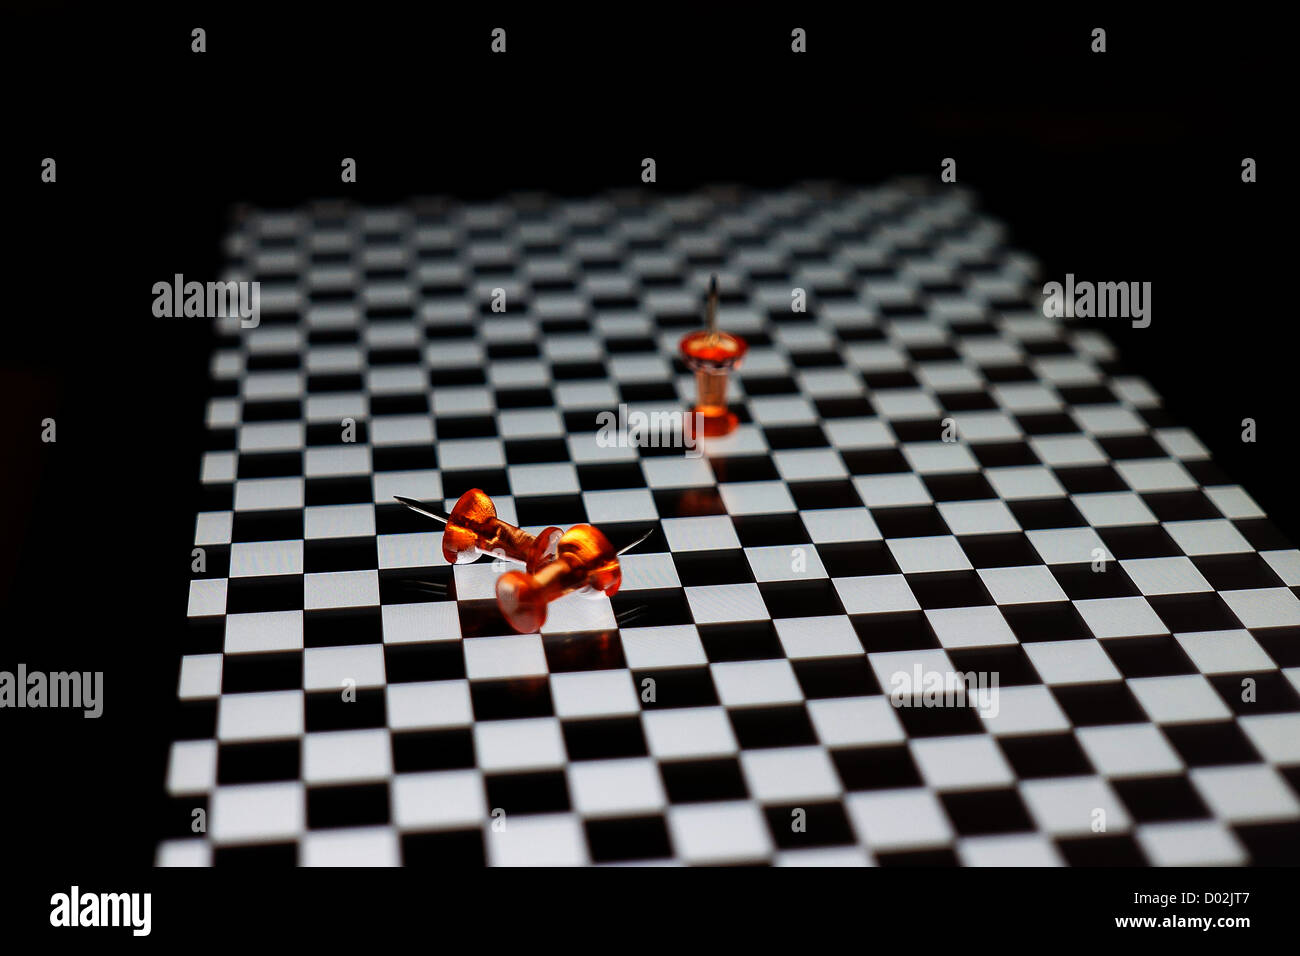 Orange drawing pins on chequered surface - Stock Image